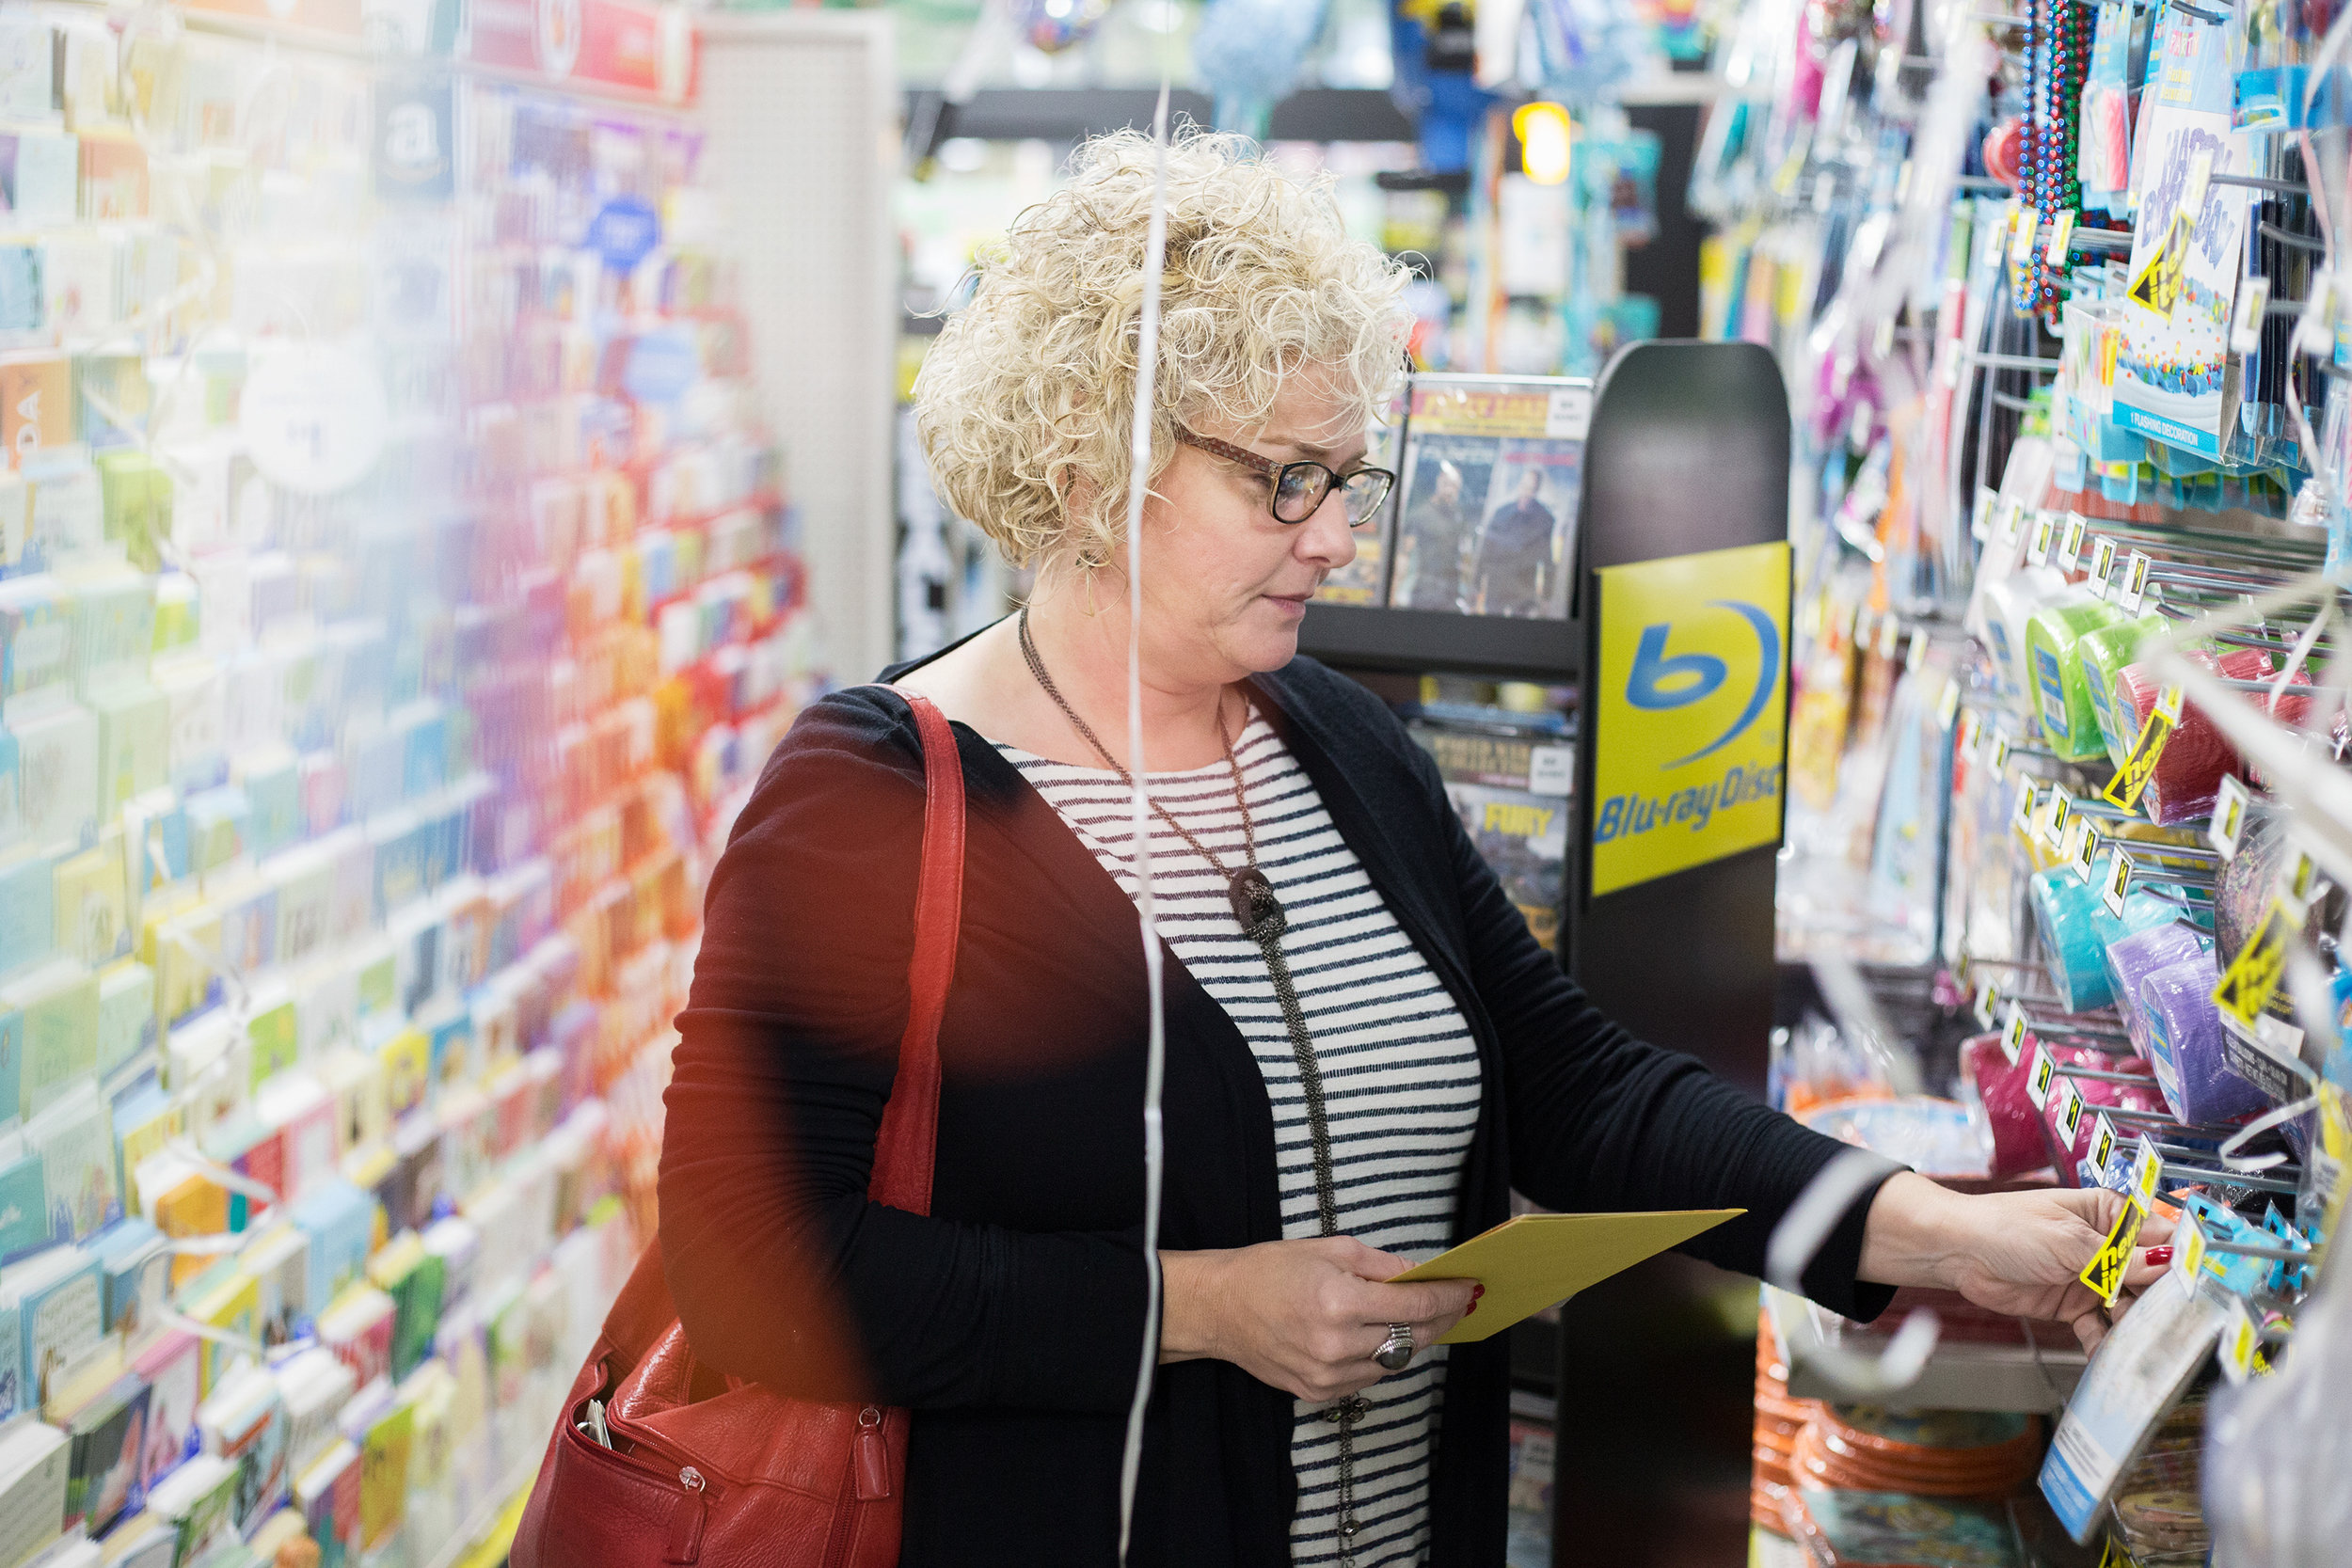 Denise Marler of Evensville, Tenn. shops for a birthday card for her father's 70th birthday at Dollar General in Evensville, Tenn. Thursday, Nov. 16 2017. Marler said she shops at the store two to three times a week.